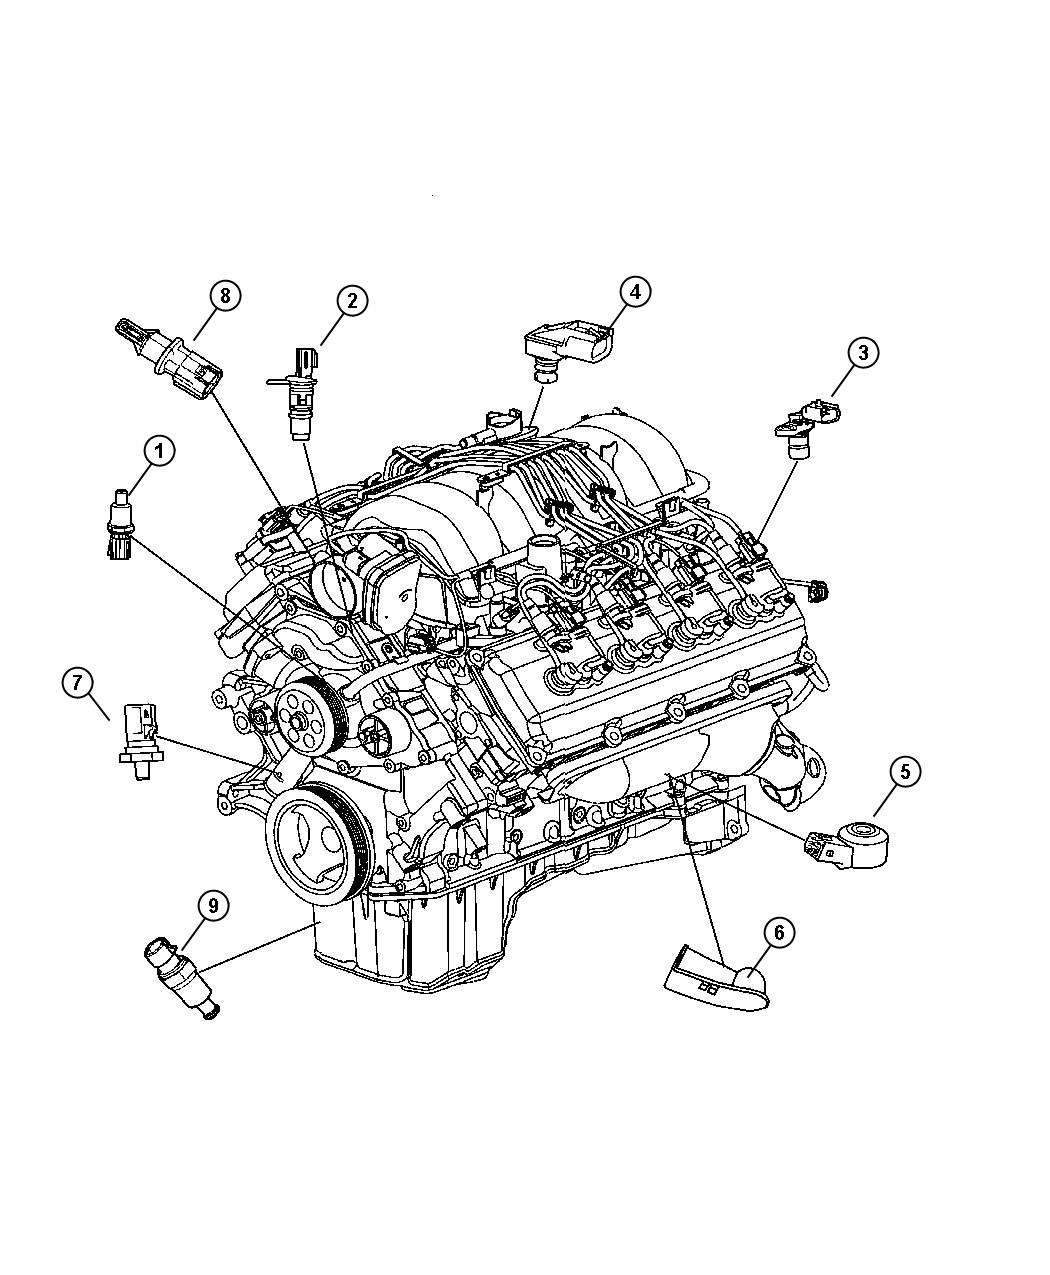 P 0996b43f8075ad4c together with ShowAssembly besides 1xynv Iat Sensor Located Jeep Liberty 2005 also Ford Drive Shaft Diagram 1979 furthermore 383. on hemi engine